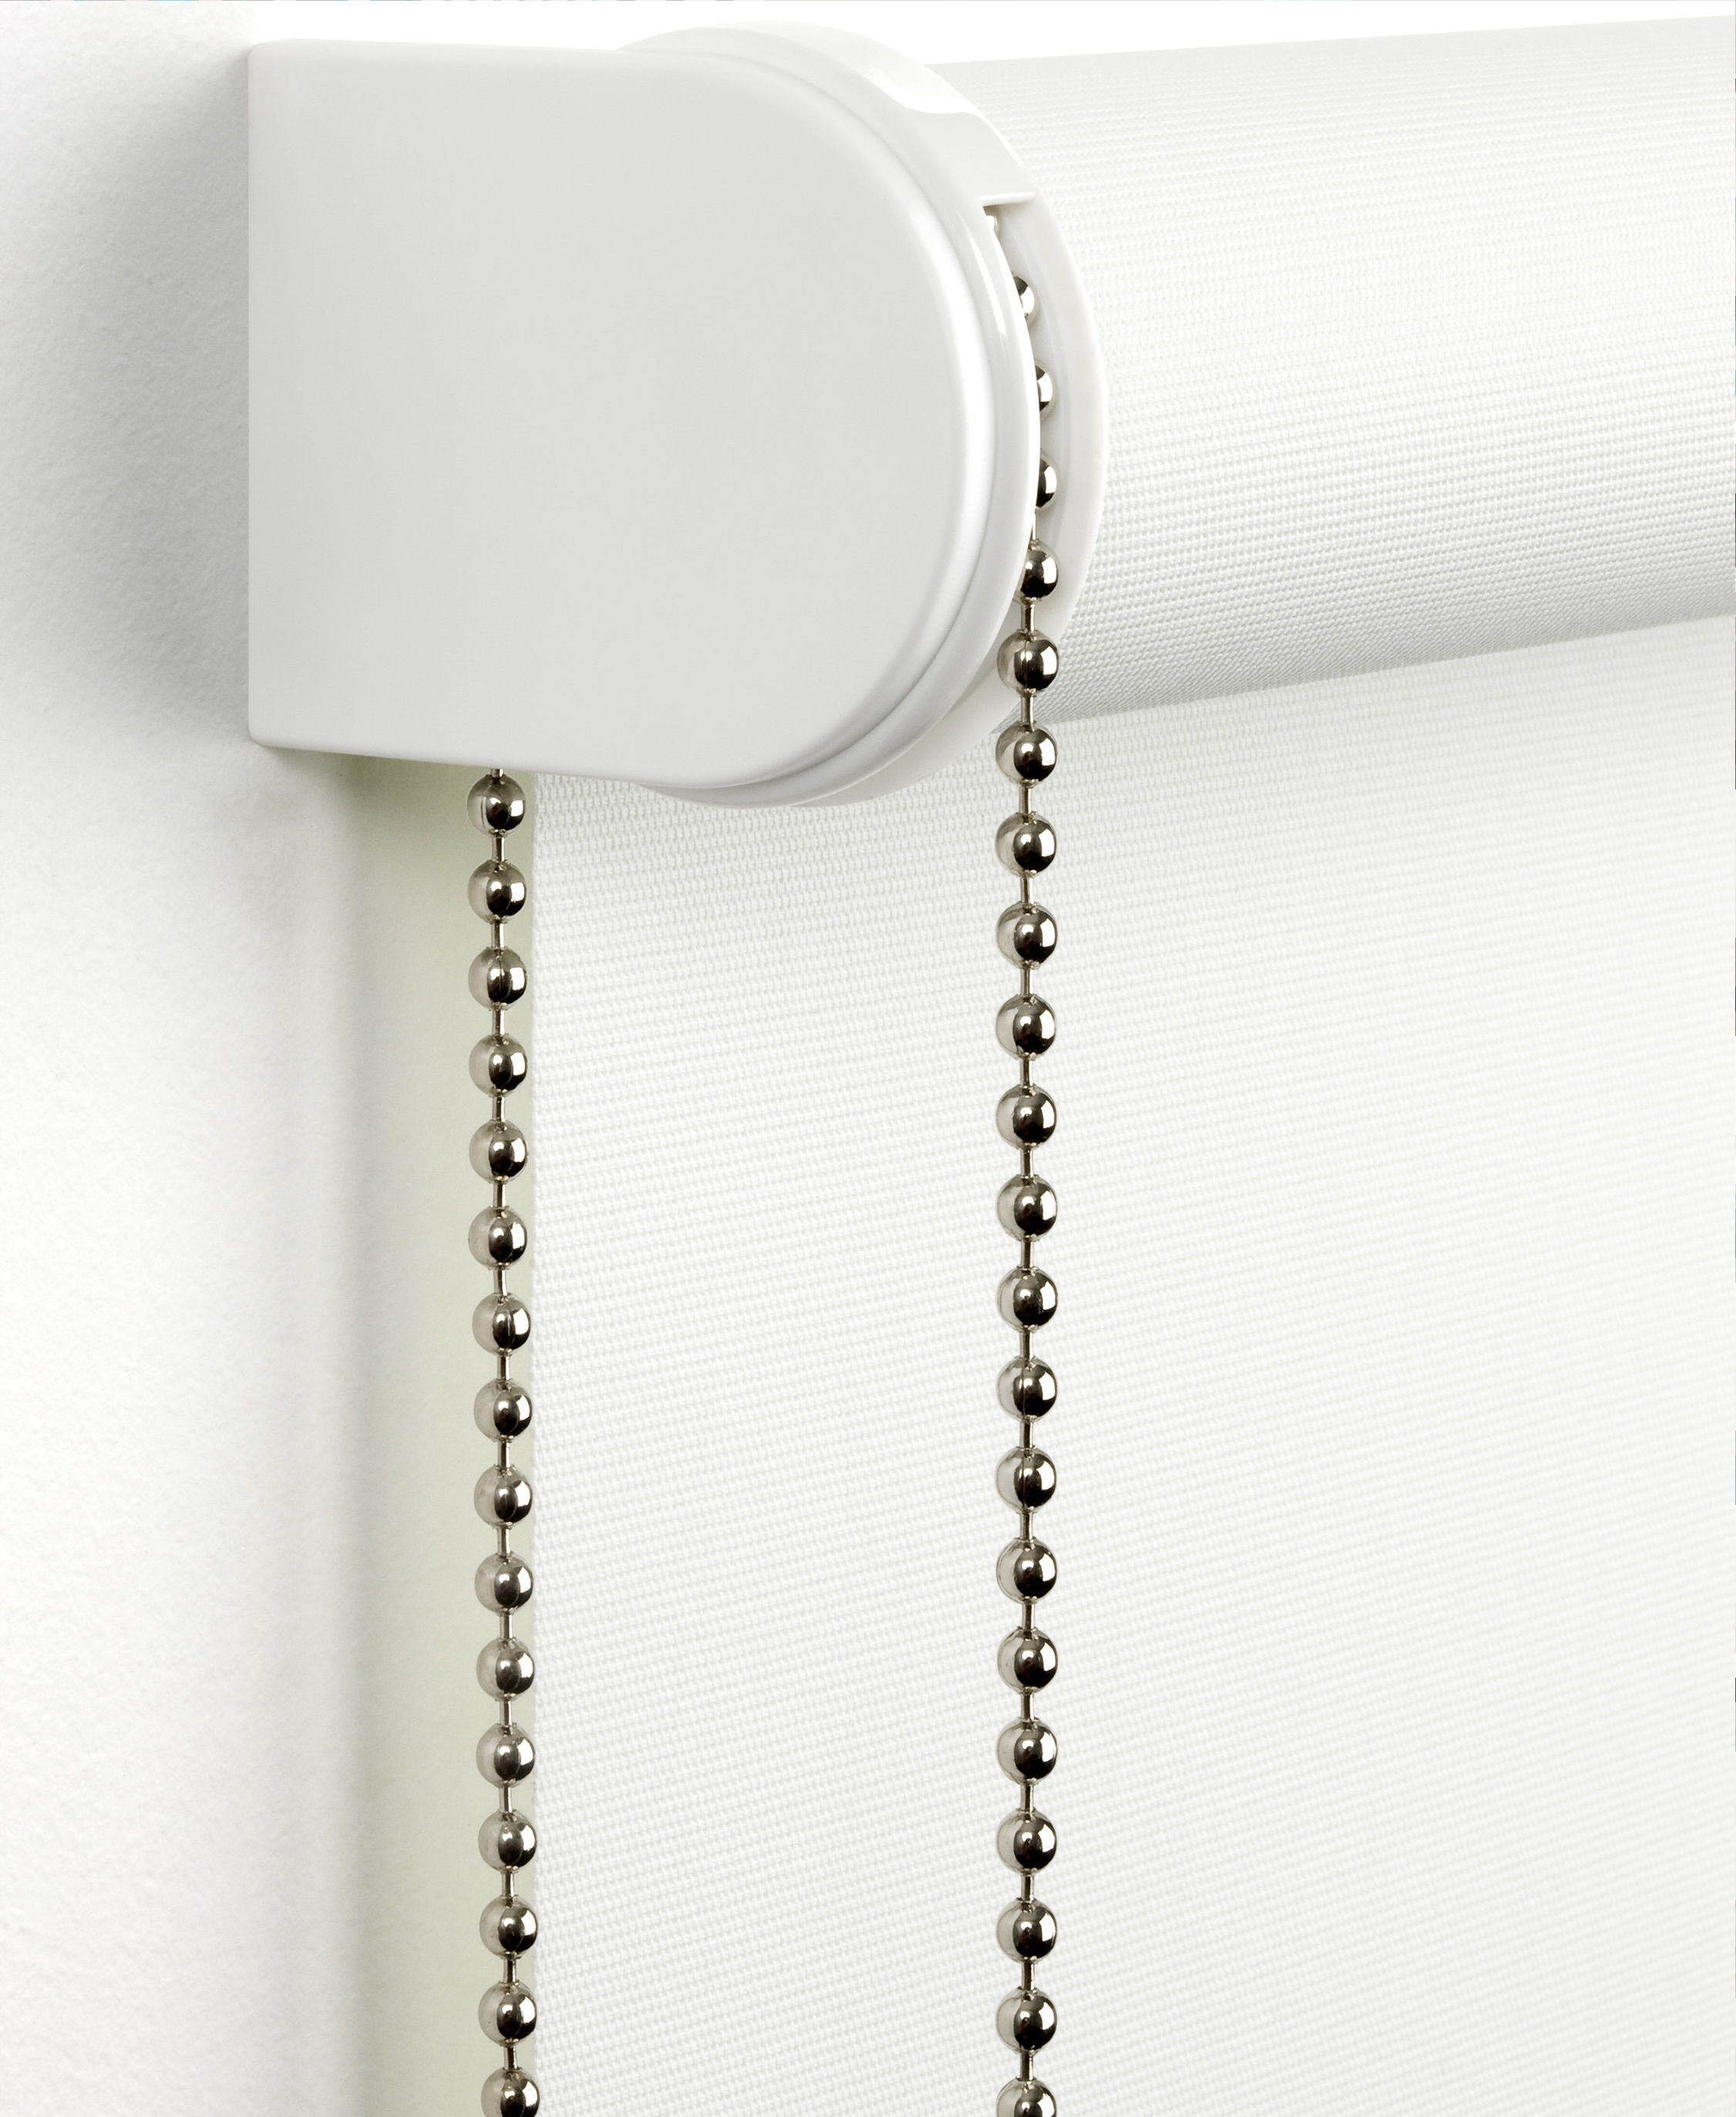 ROLLER BLIND - CLOSE UP WITH OPTIONAL METAL CHAIN